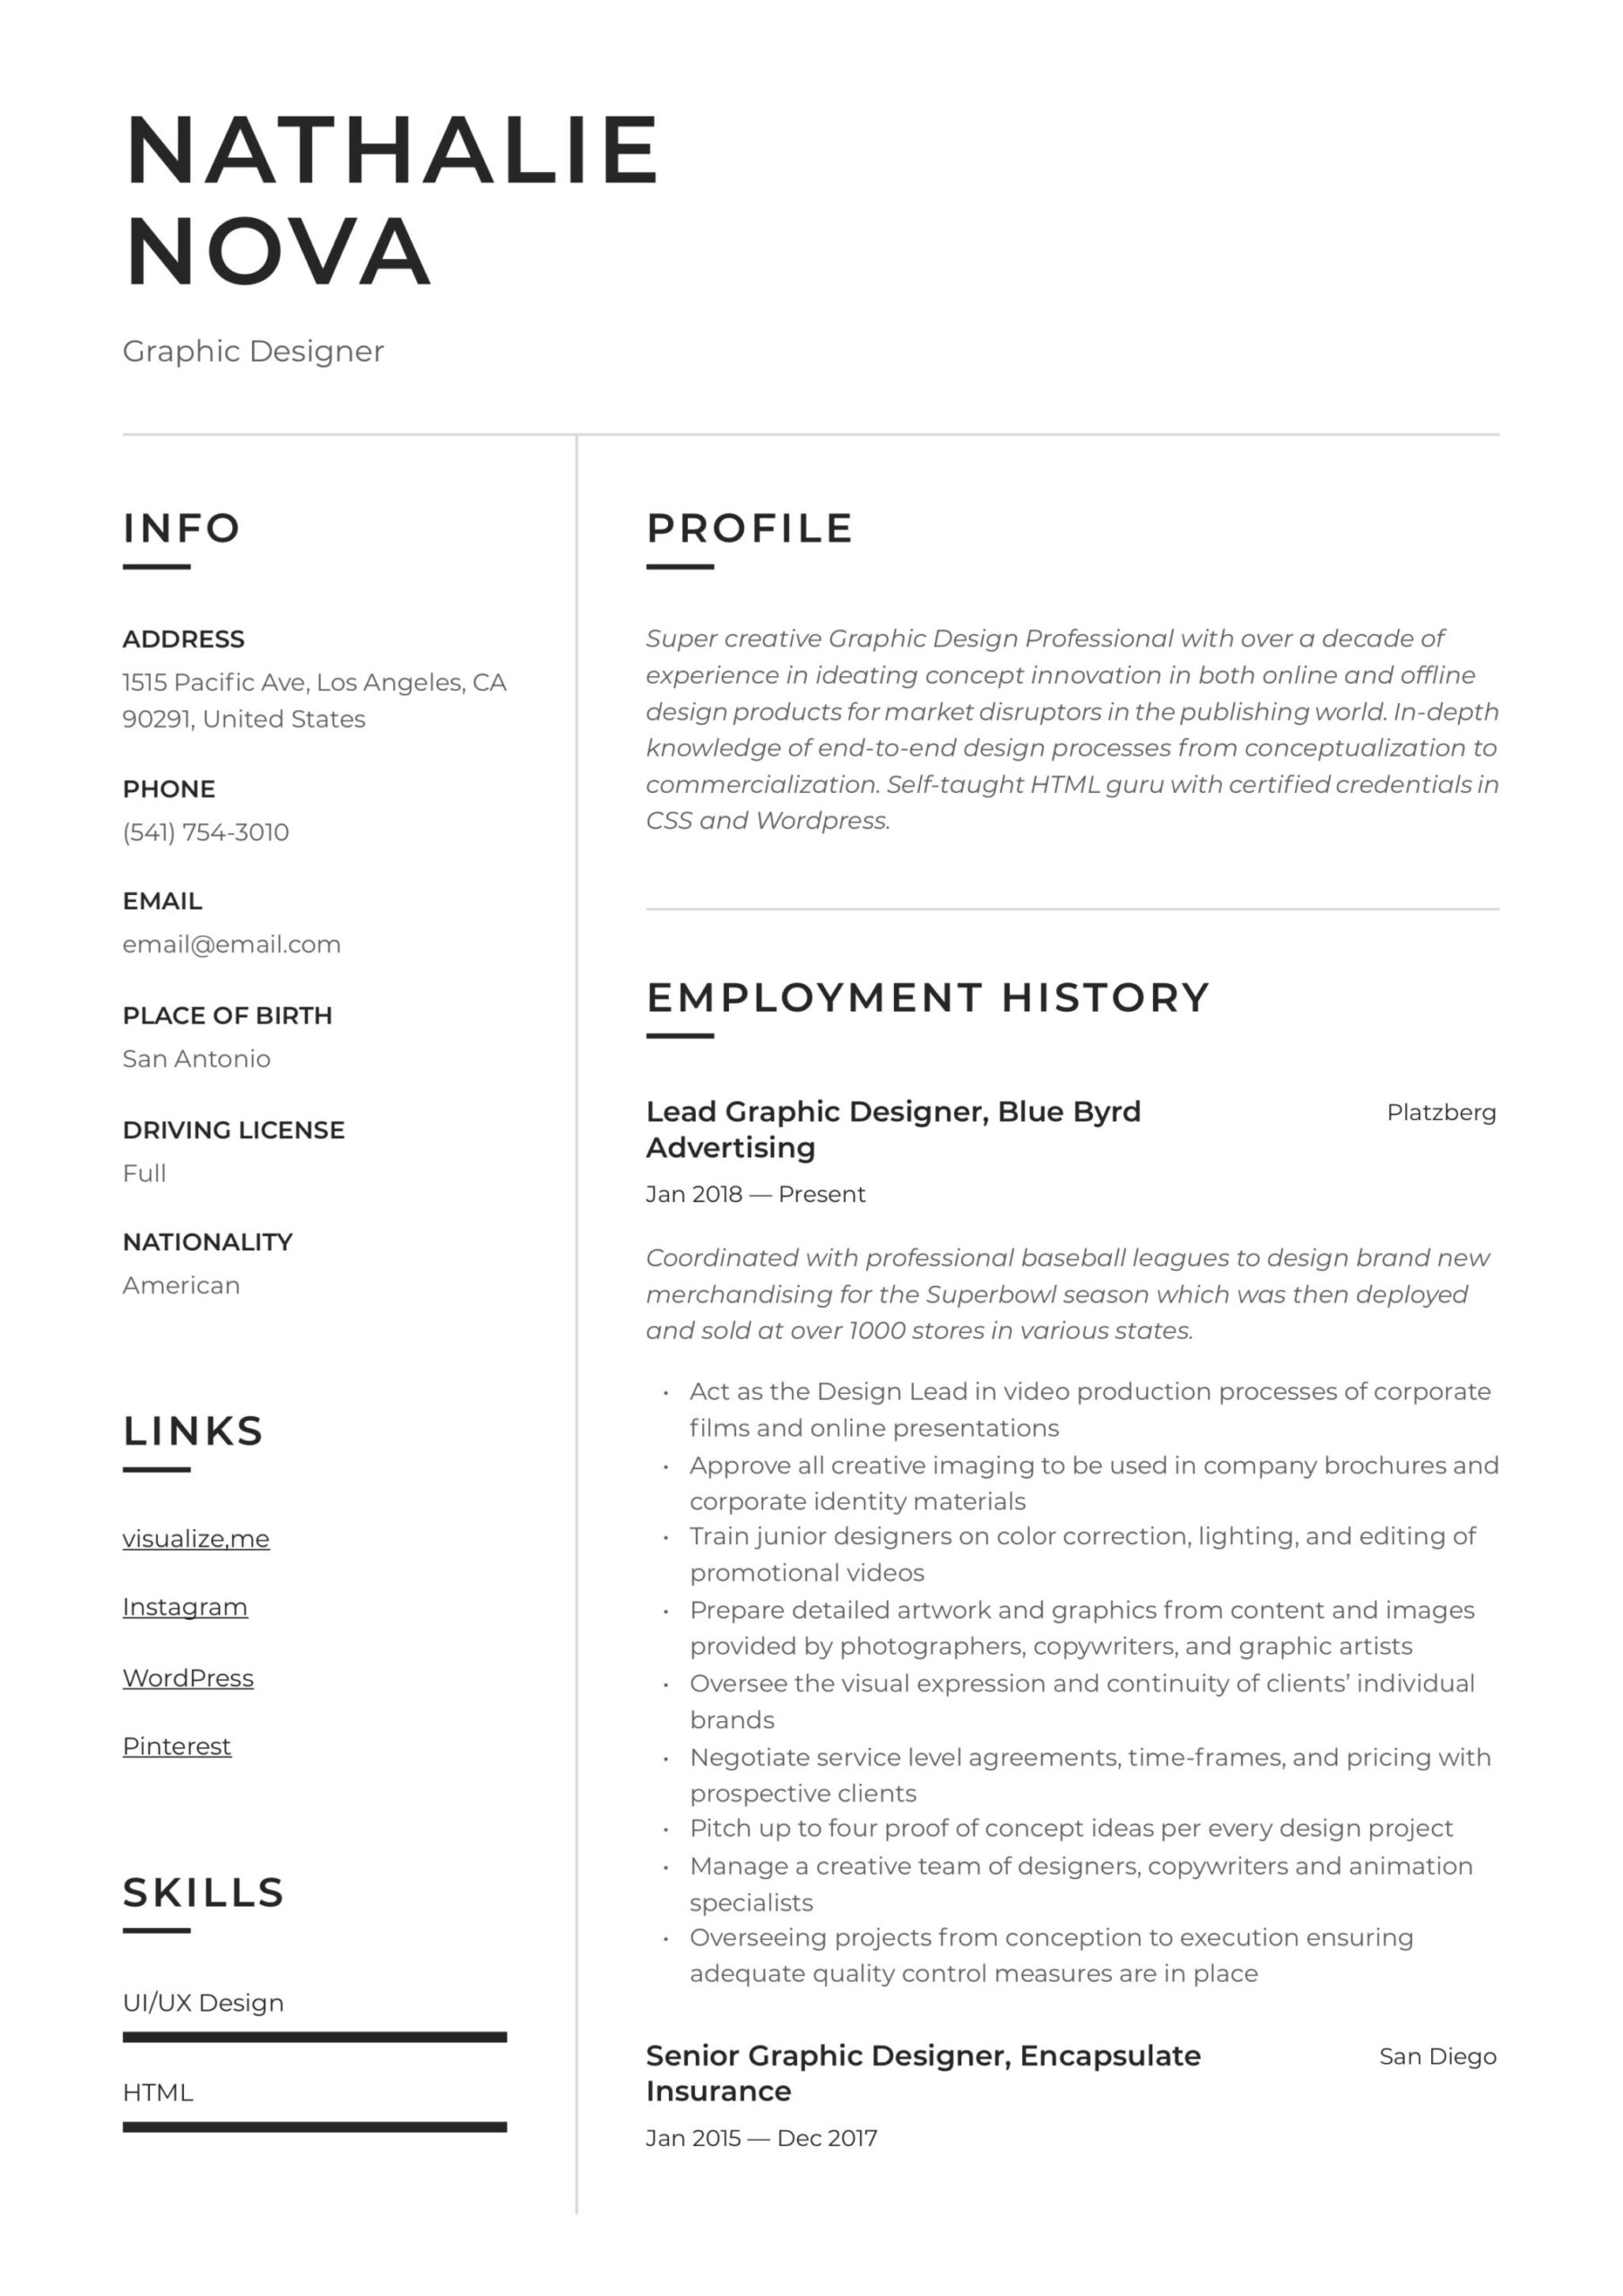 graphic designer resume writing guide examples objective statements amazing samples Resume Graphic Designer Resume Objective Statements